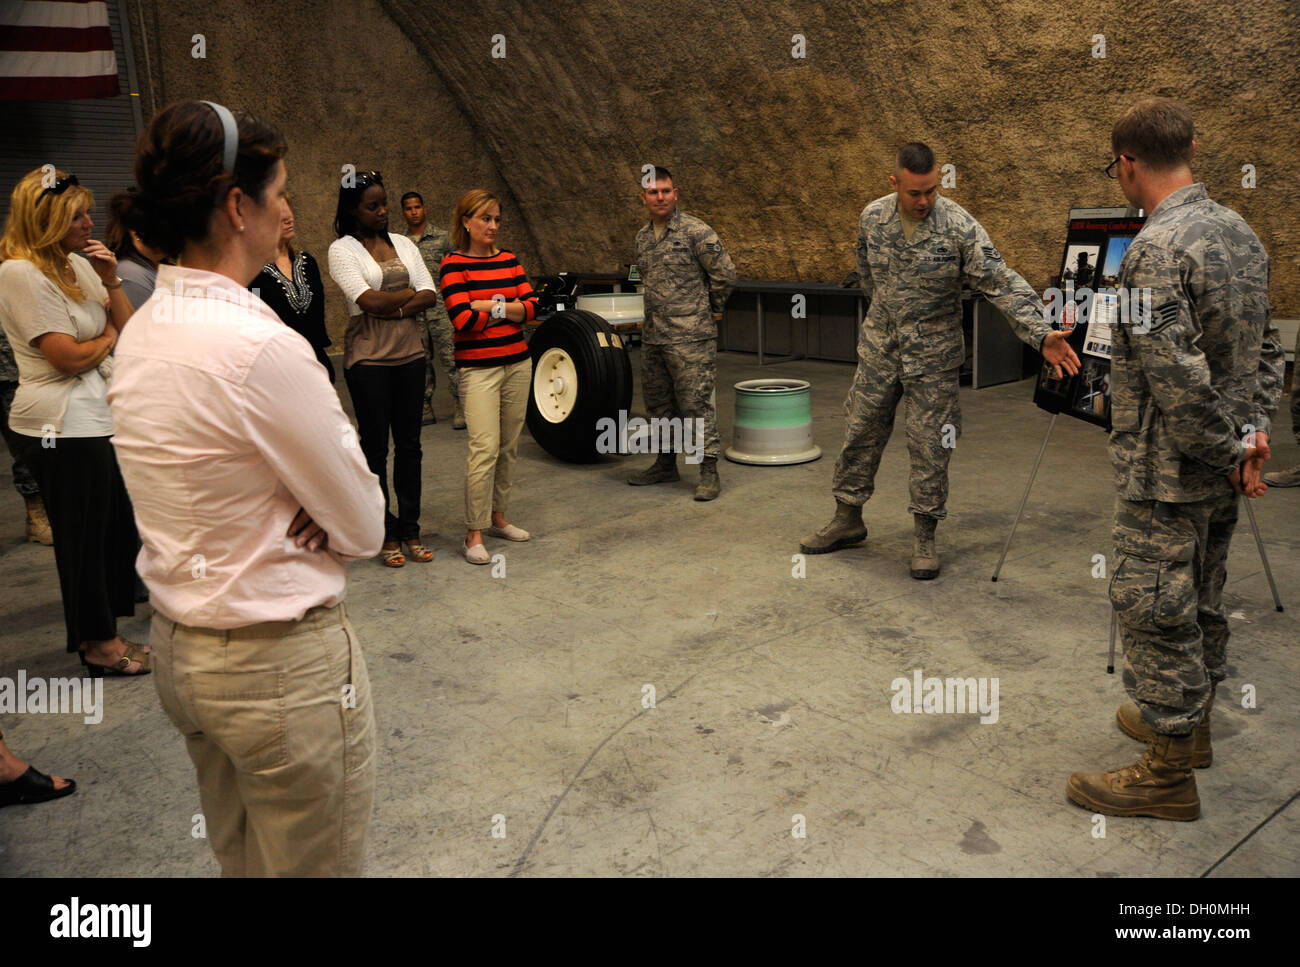 Military spouses receive a mission brief on airfield battle damage recovery during a Command Sponsorship Program tour at the 379th Air Expeditionary Wing in Southwest Asia, Oct. 23, 2013. The CSP is an accompanied-tour initiative started in 2011 to increa - Stock Image